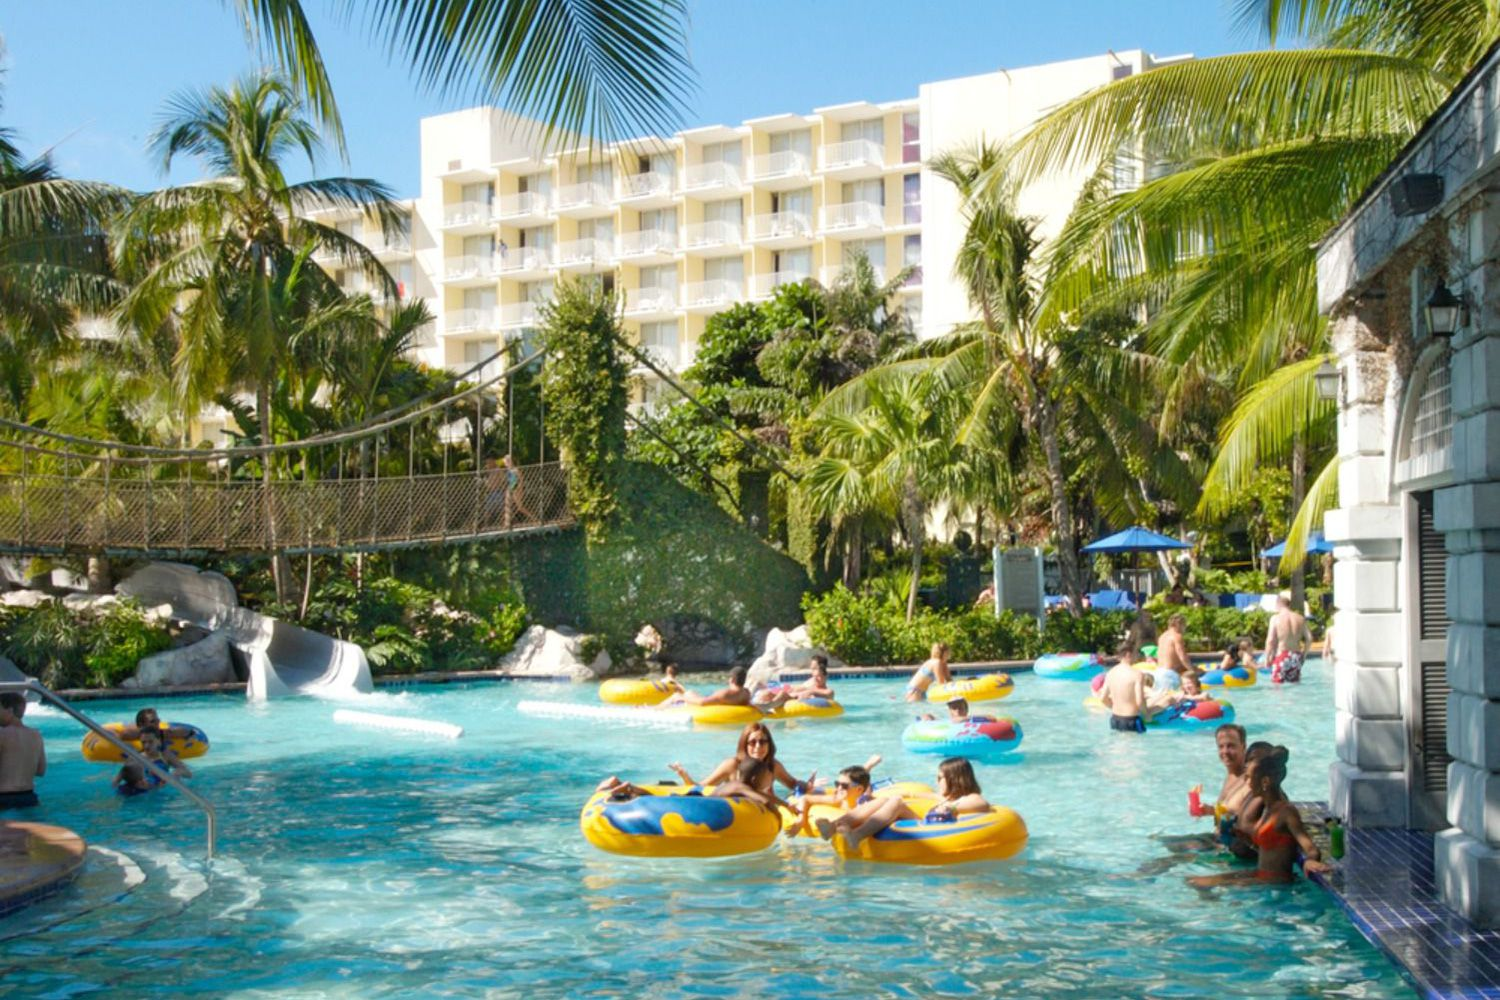 Top 4 KidFriendly Water Parks in Jamaica